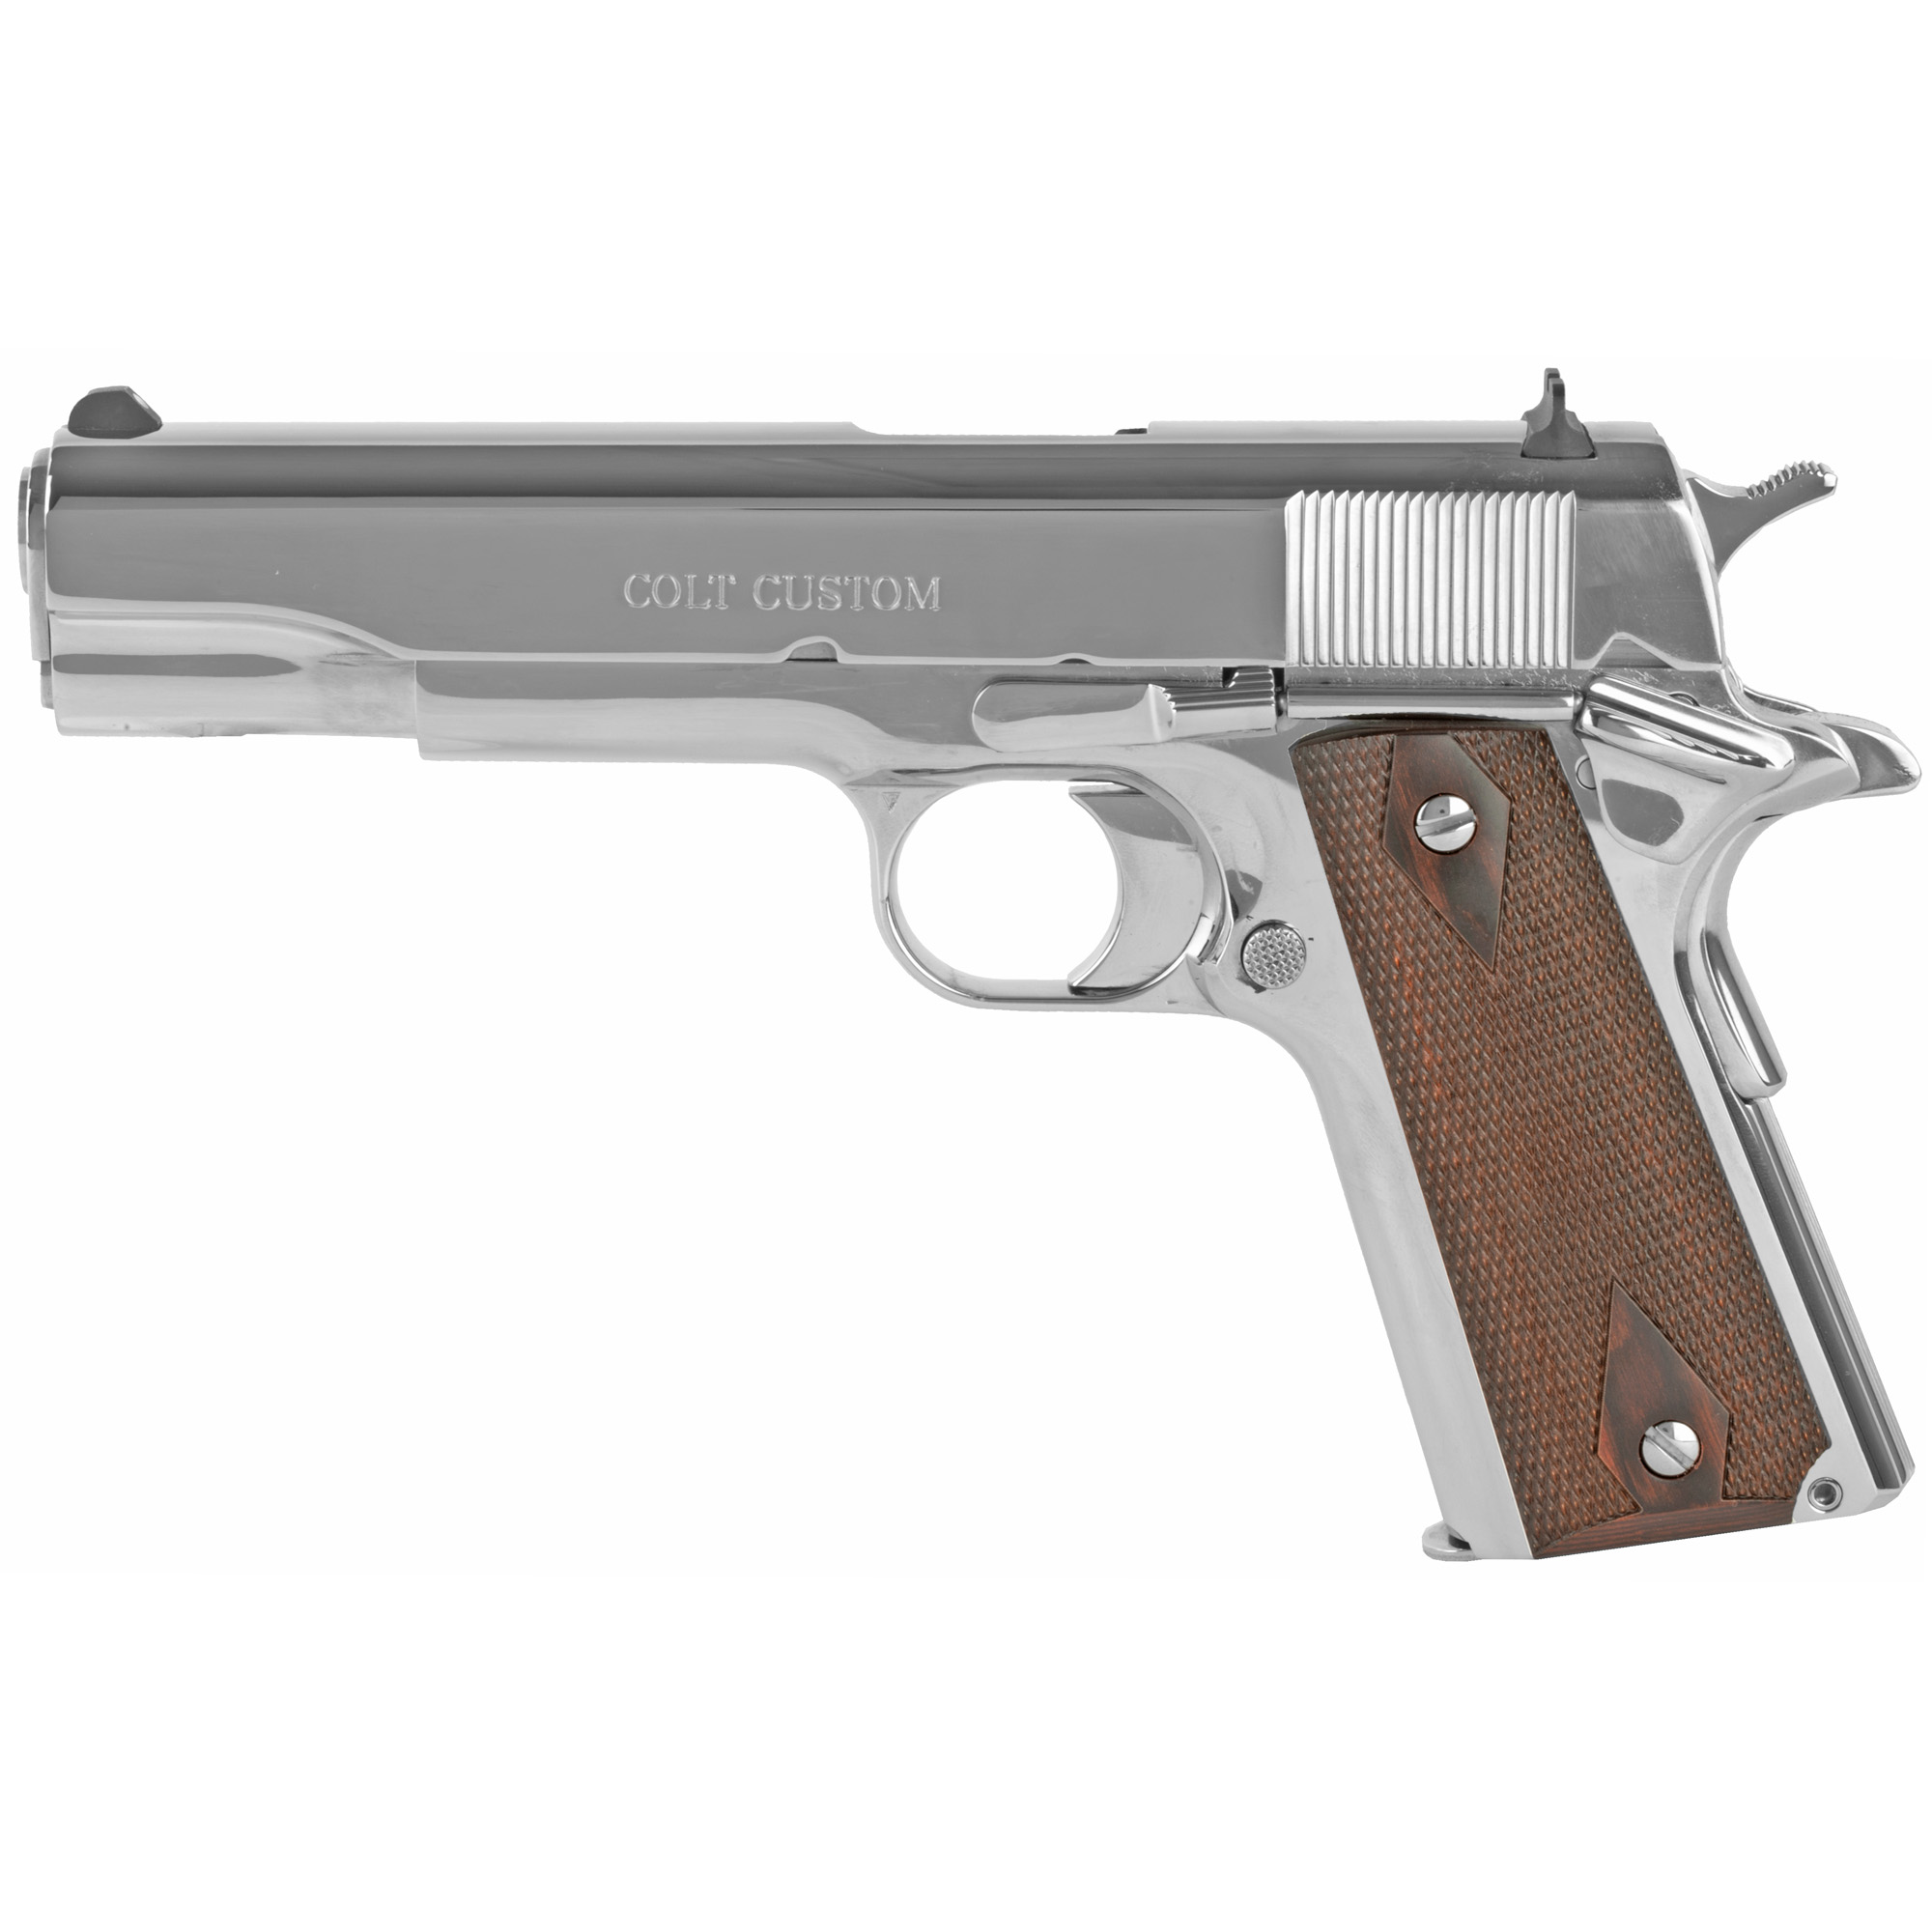 "The Colt M1911 pistol has been a favorite for 100 years as a service pistol"" law enforcement pistol"" and personal defense firearm. This pistol features a bright stainless finish"" white dot sights and steel frame."